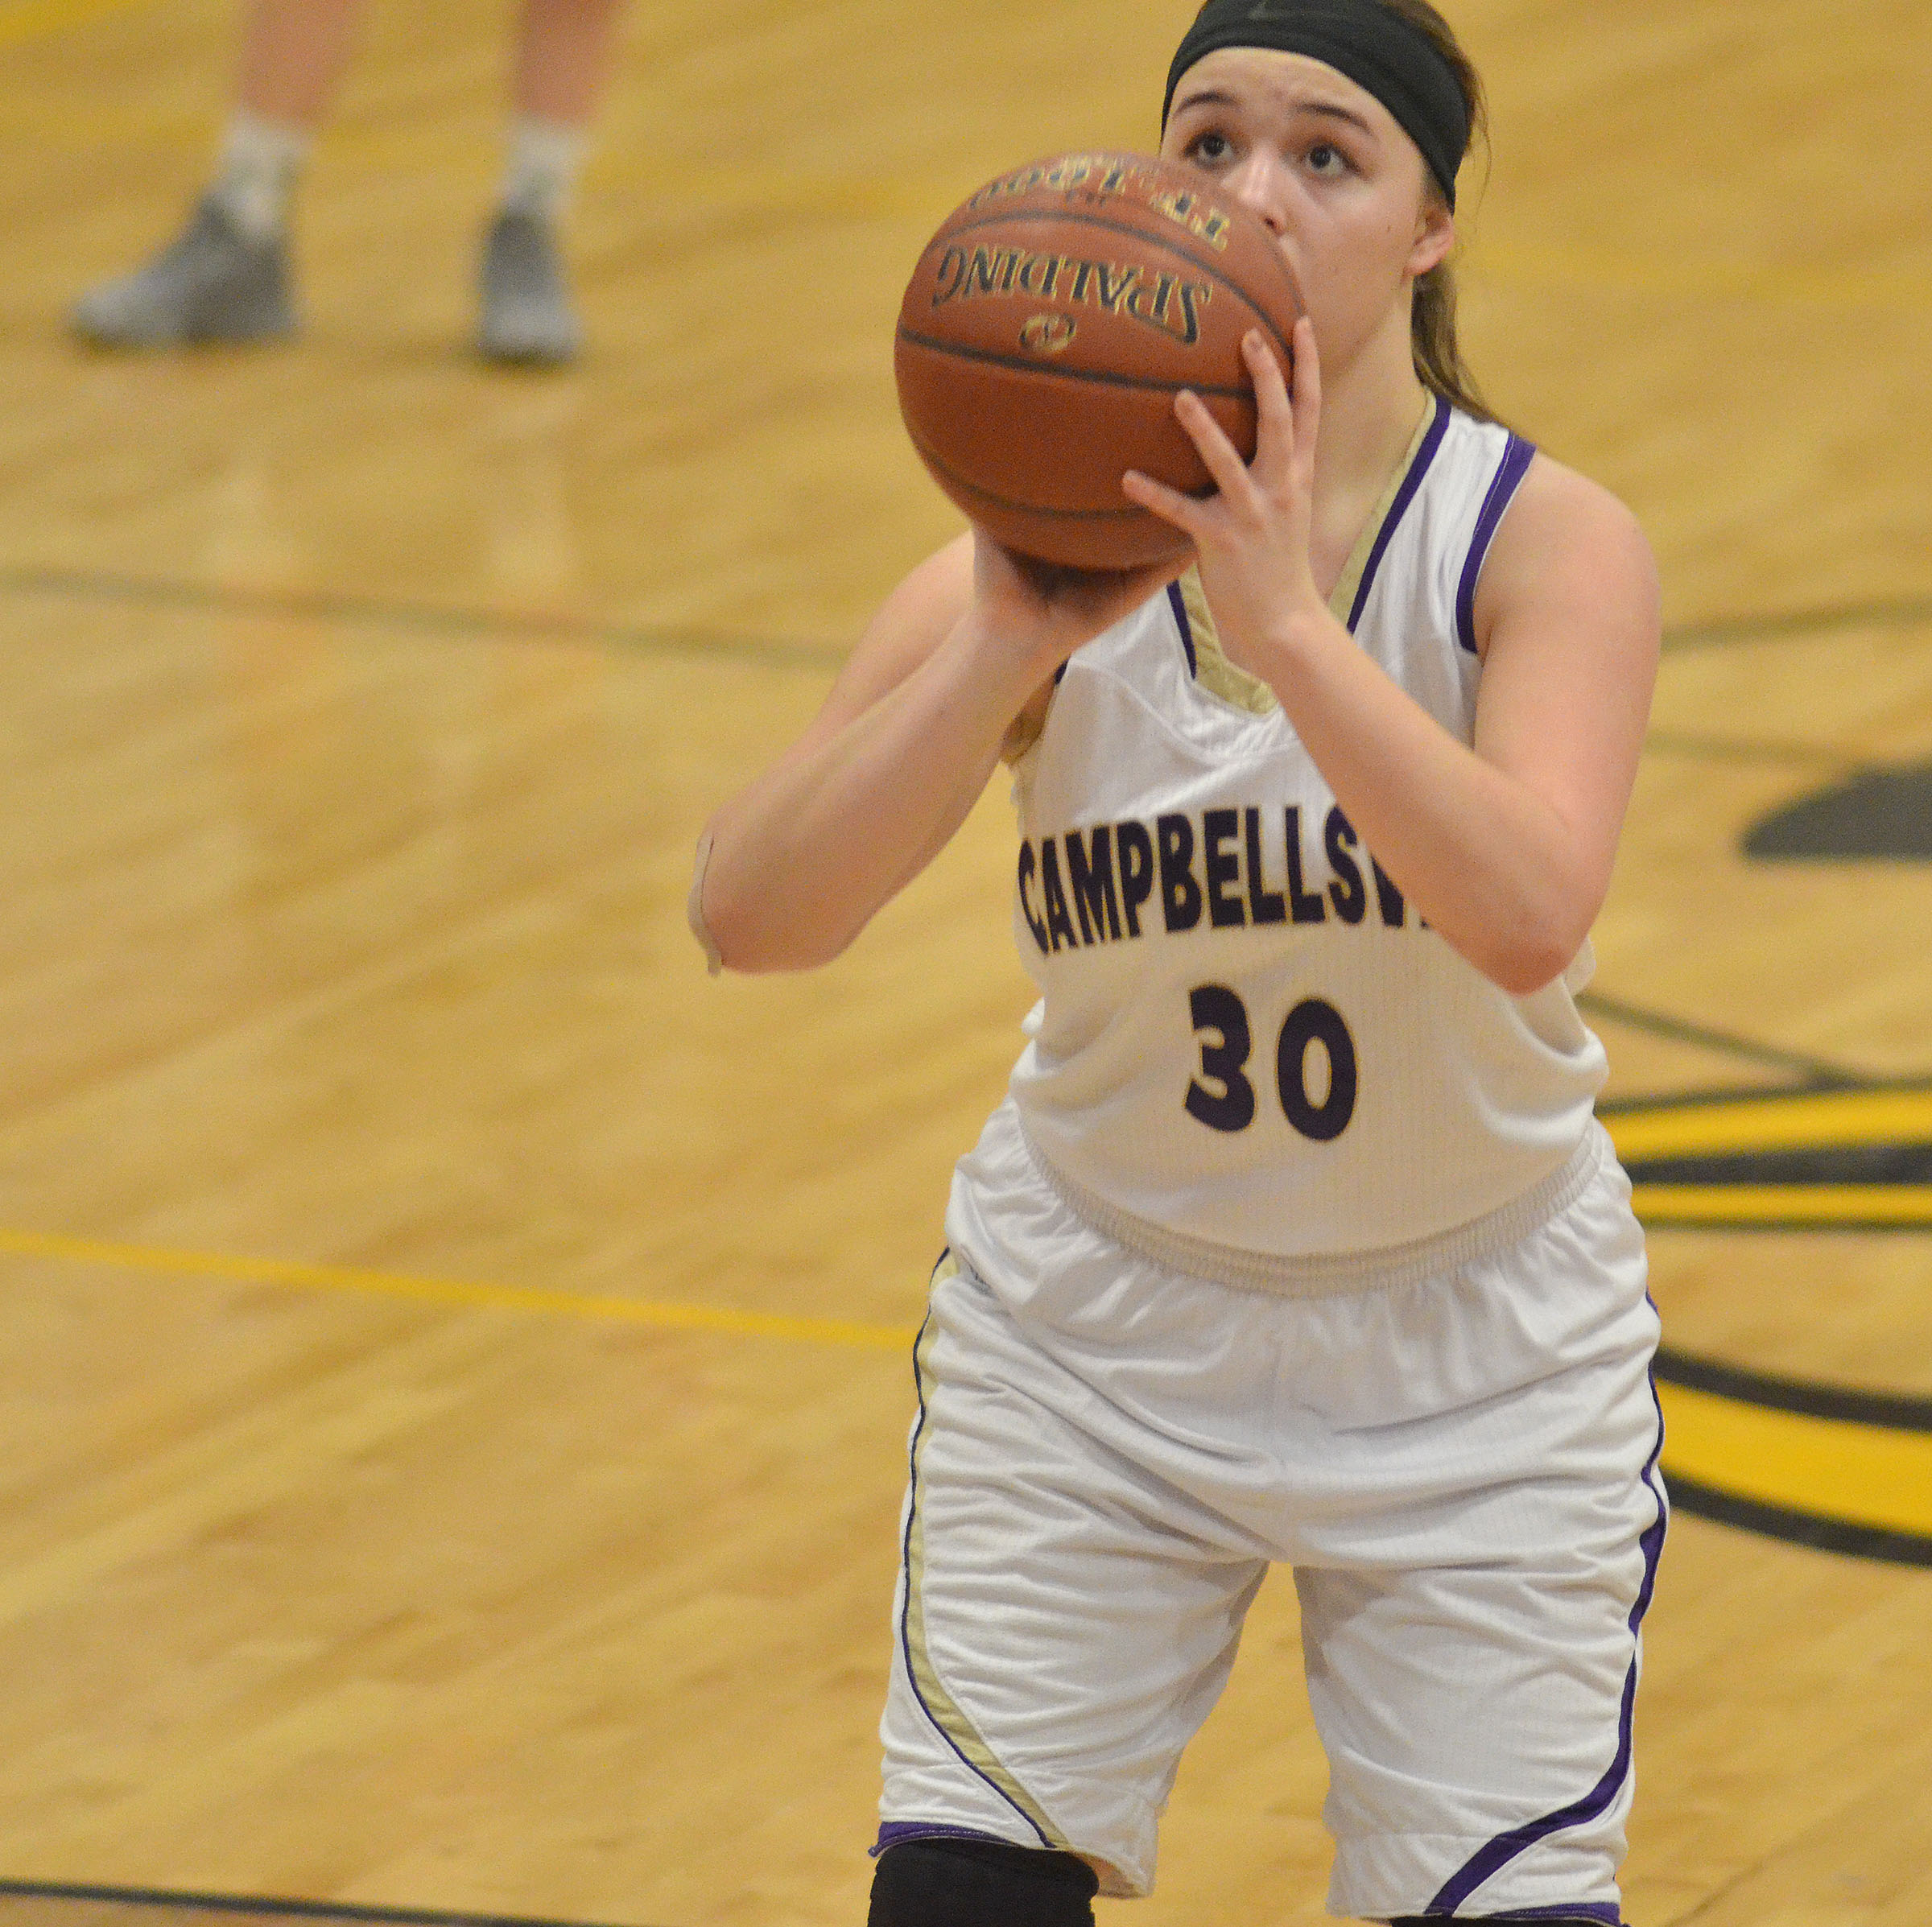 Campbellsville Middle School eighth-grader Kenzi Forbis shoots the ball.